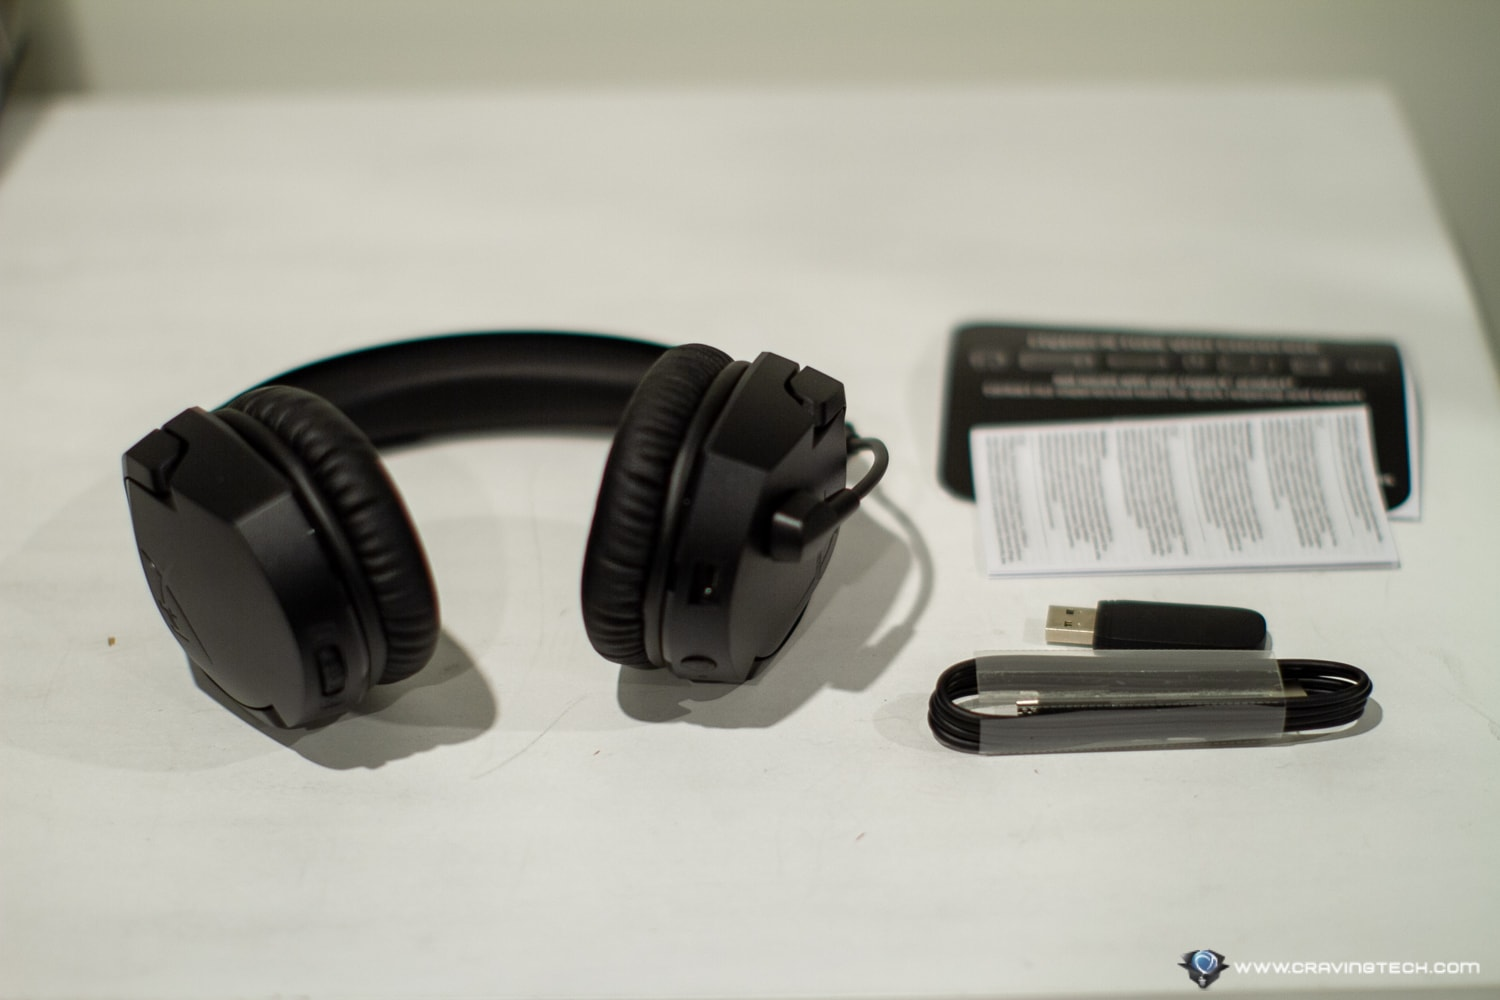 HyperX Cloud Stinger Wireless Gaming Headset Packaging Contents